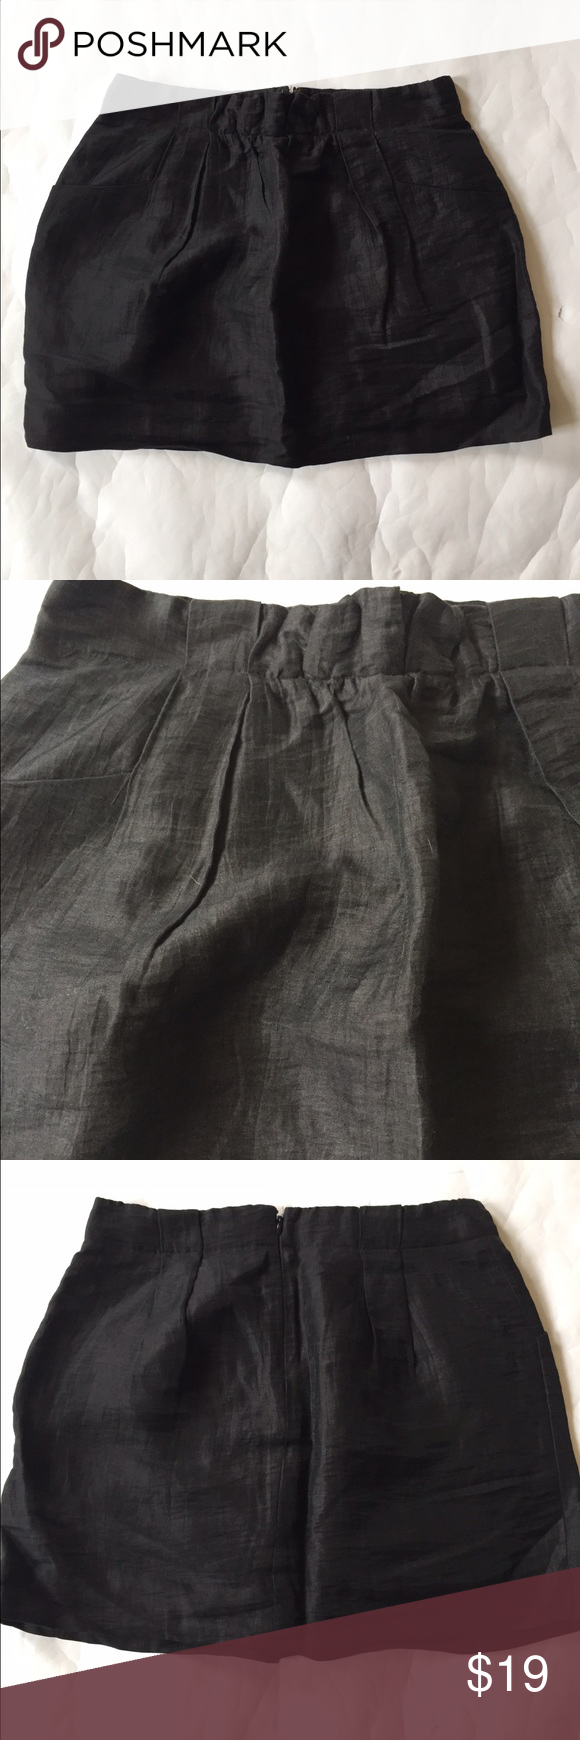 J. Crew Linen Mini Skirt {with pockets} Fun indigo blue Linen mini skirt from J. Crew. Excellent used condition. Has pockets on either side and a back zipper. J. Crew Skirts Mini